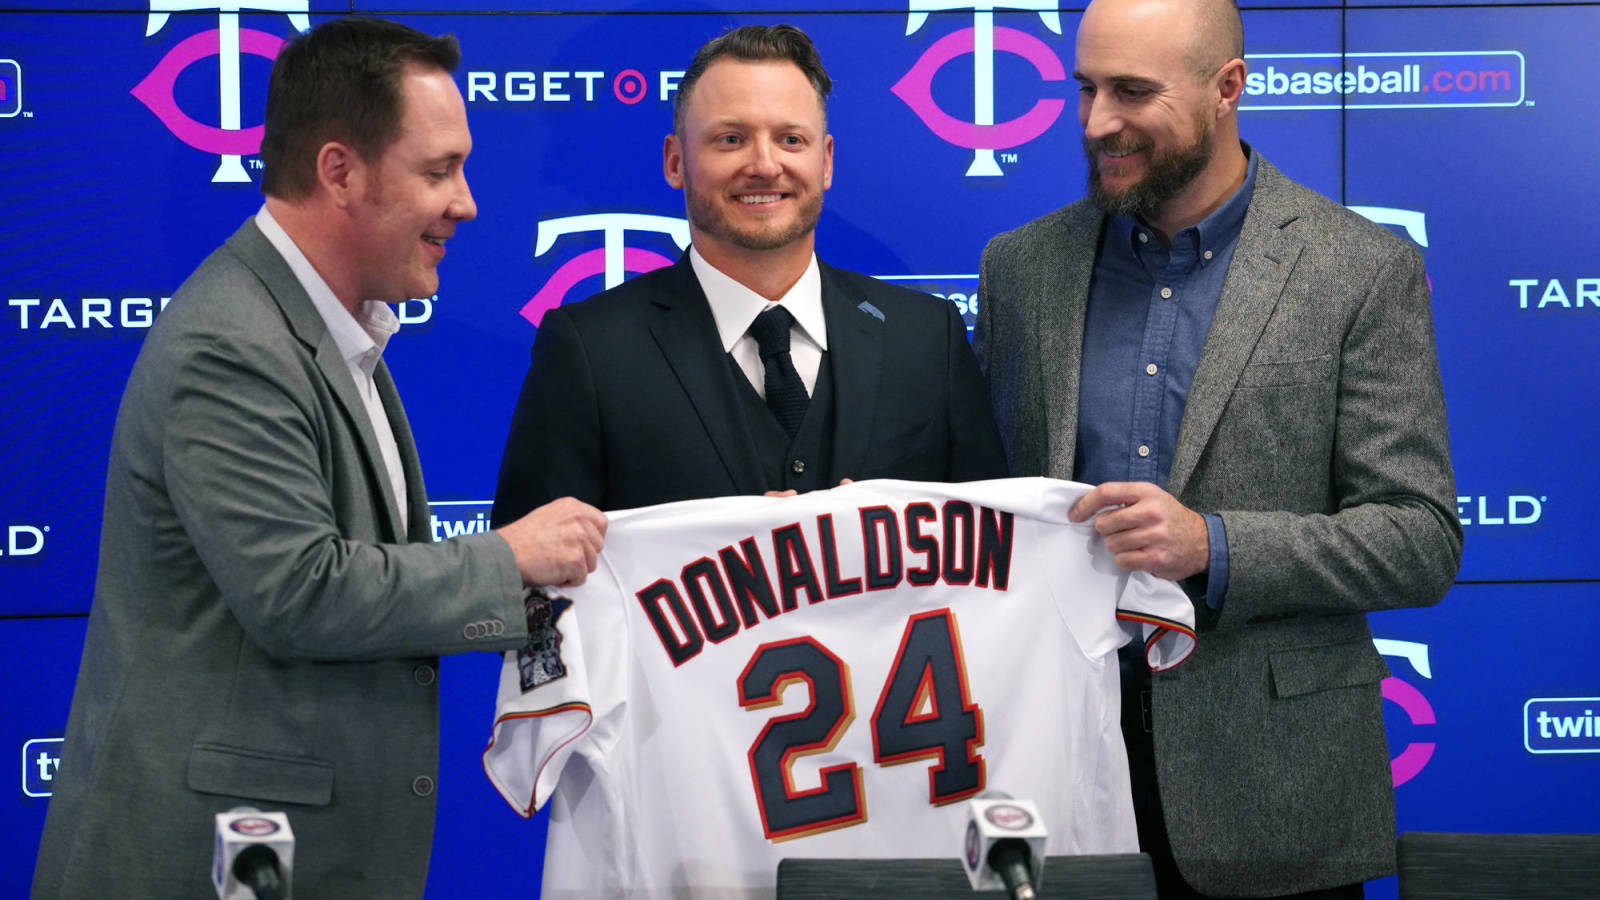 The top 2020 offseason addition for each MLB team